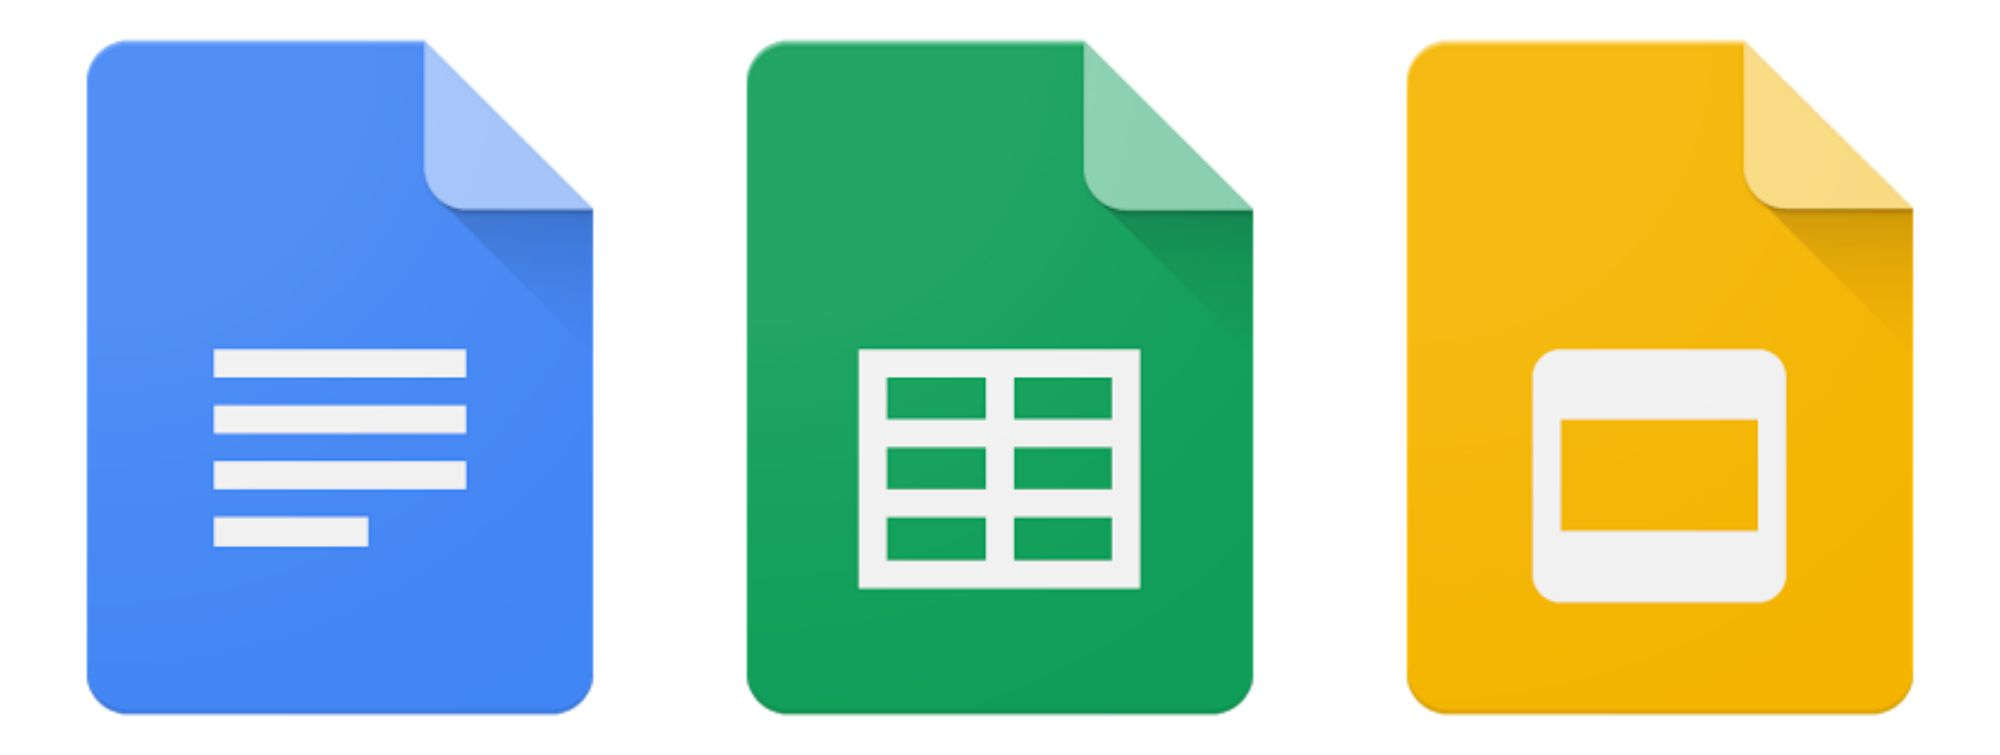 Google Docs Brings Voice Typing And New Research Tools On